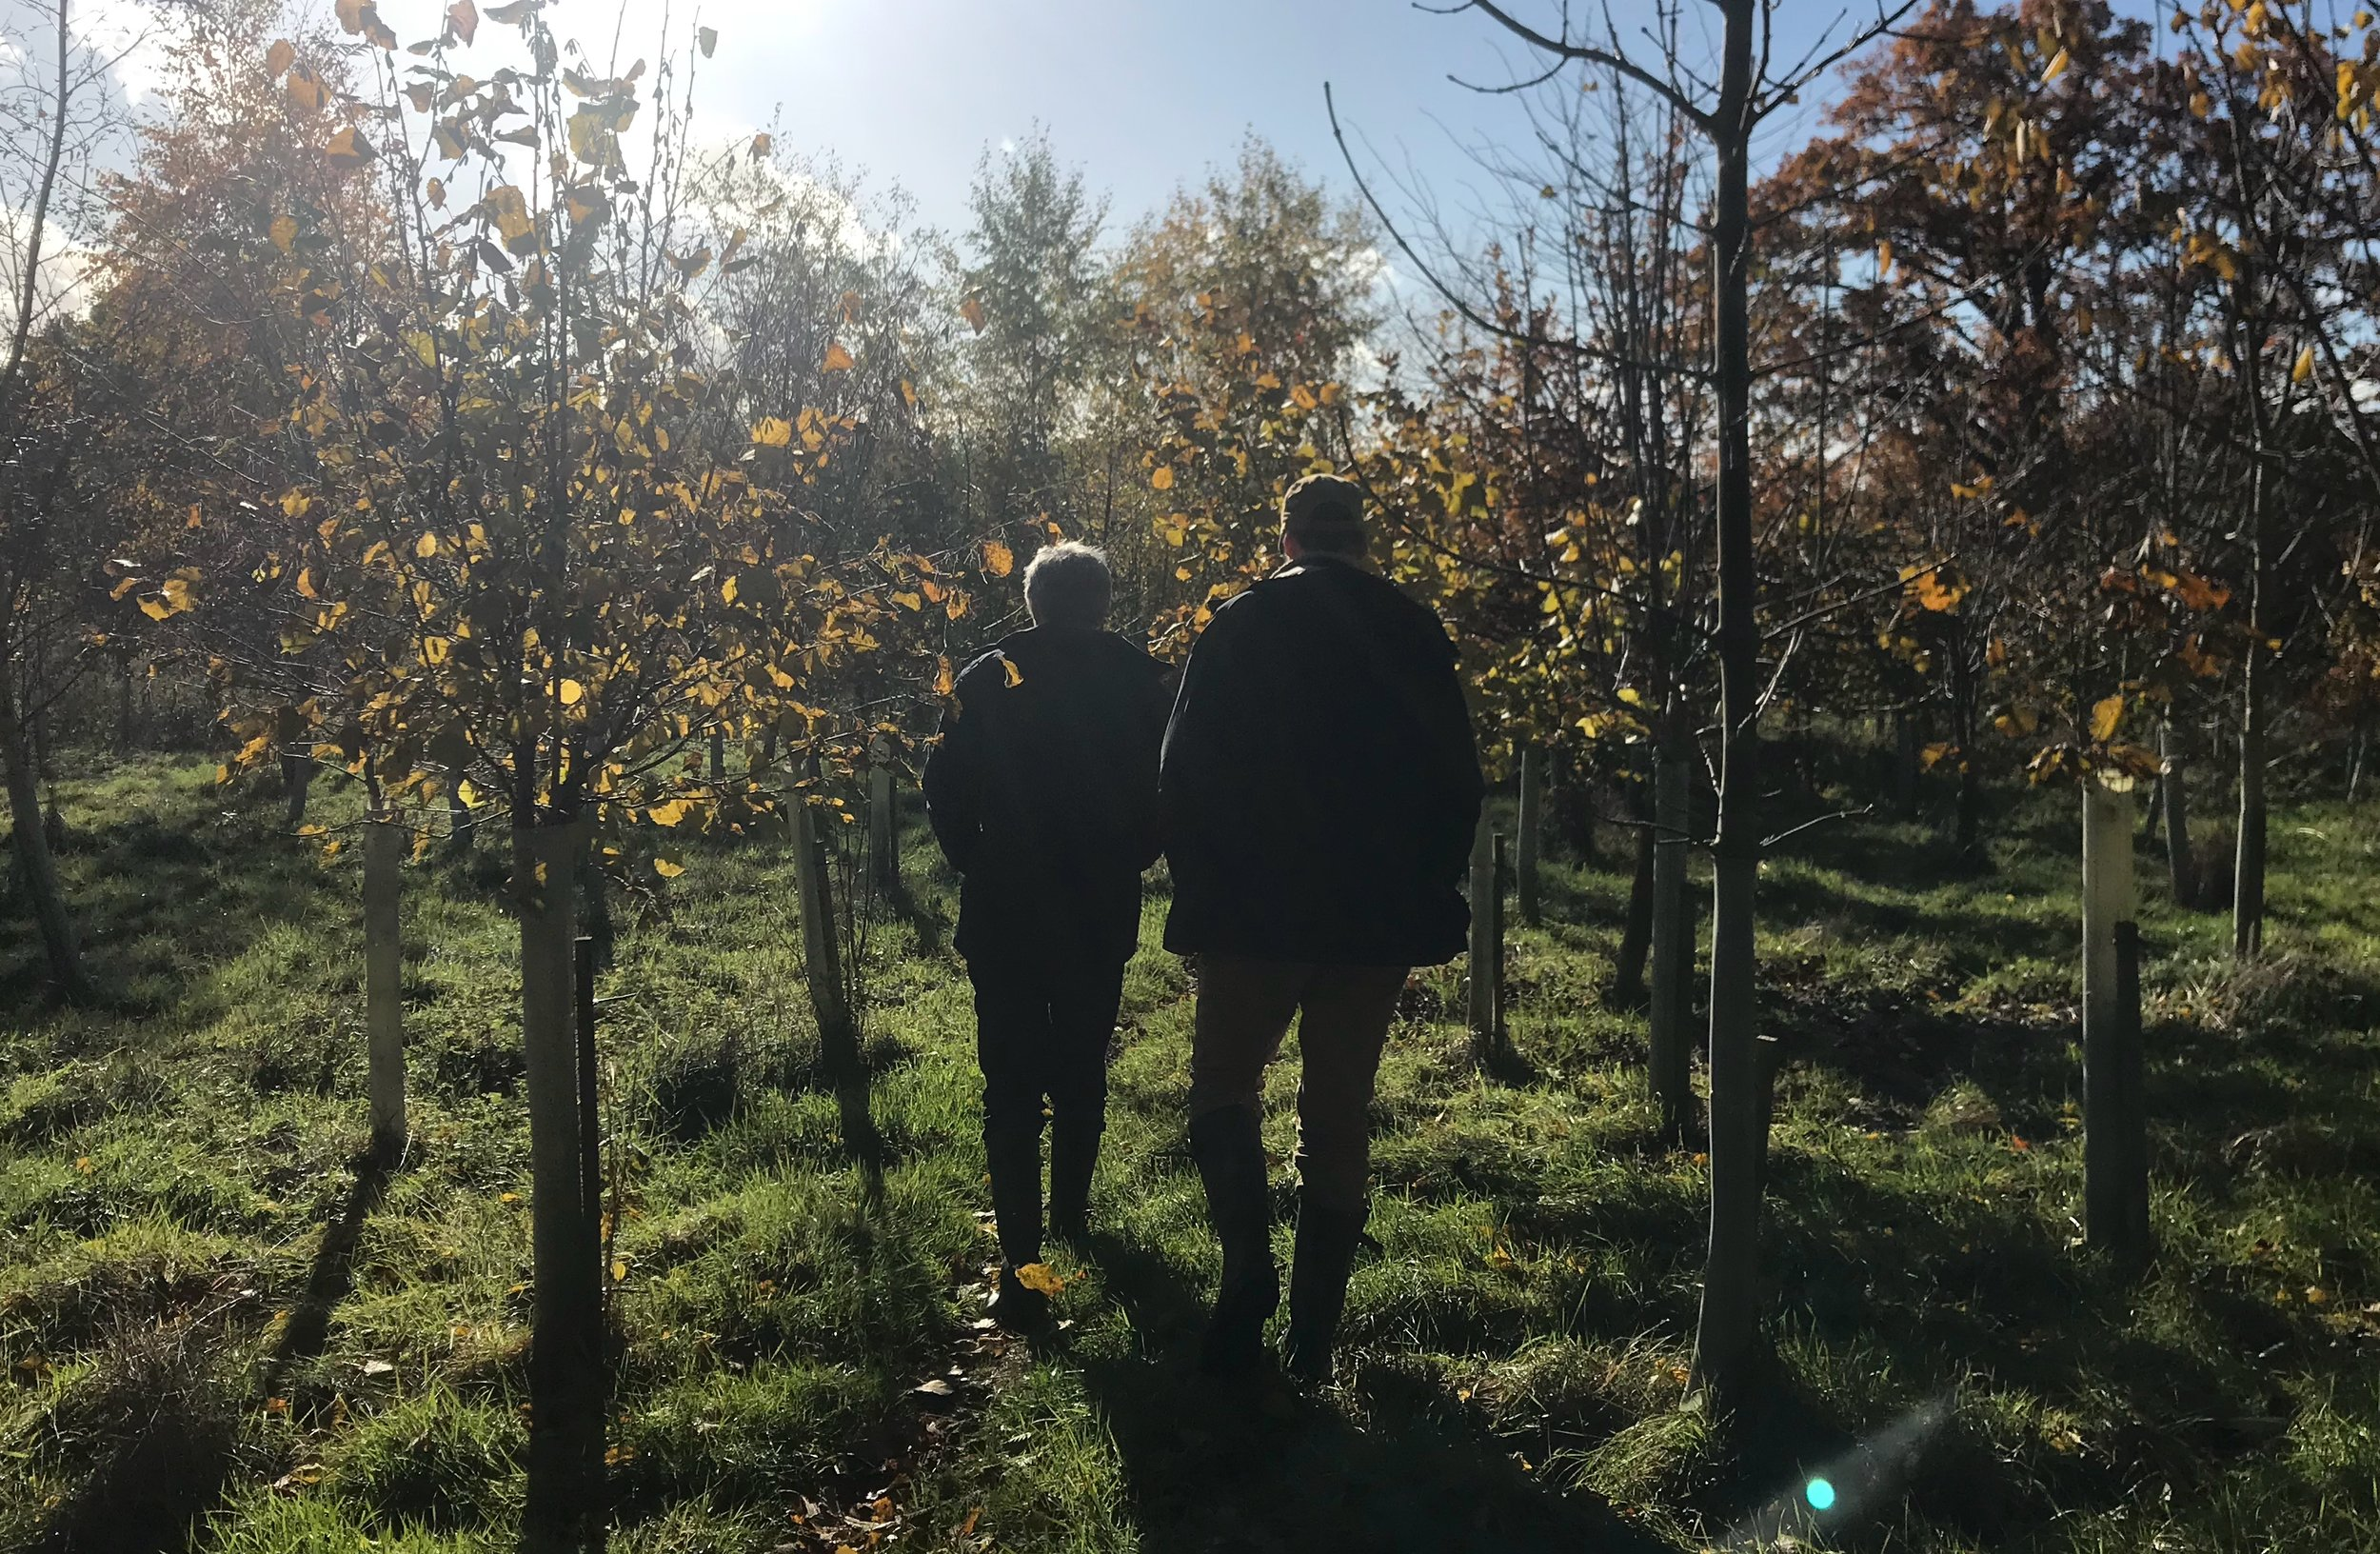 Peter and Patrick walking out among the 1,500 trees planted by Peter and his wife as a rewilding project.